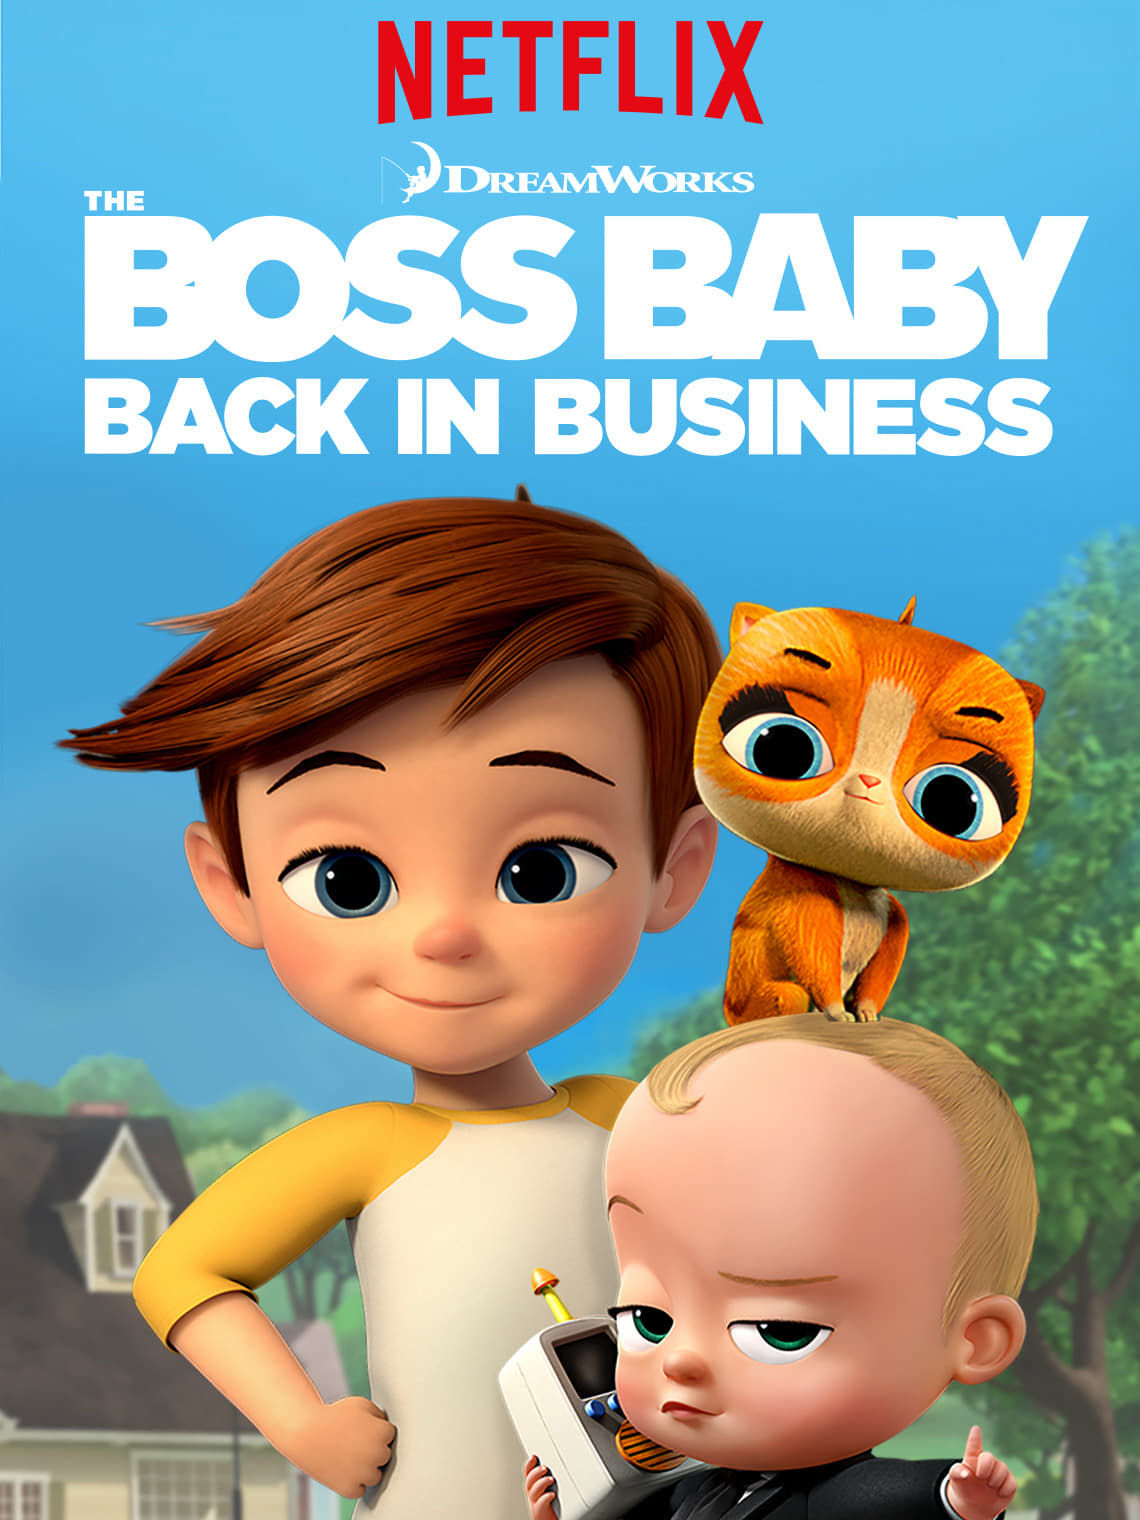 The Boss Baby: Back in Business Season 1 (2018) Episode 1-13 End